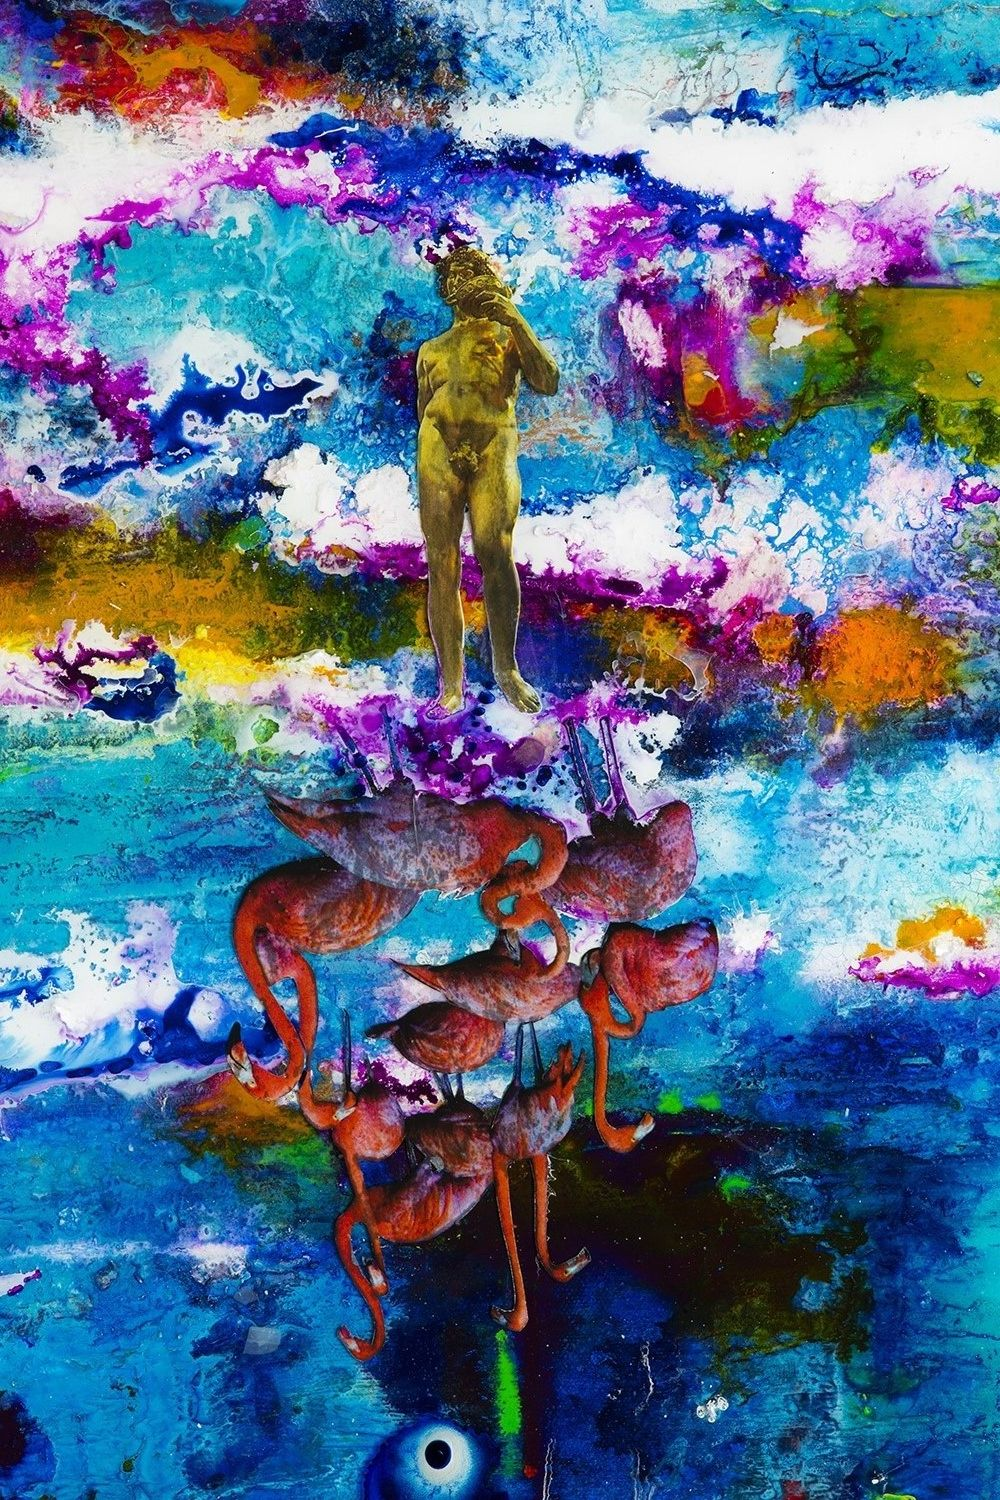 God and the Flamingos. A print from the Ultra World 1 painting. 11.5x14.5 inches. jacsfalconer4u@gmail.com